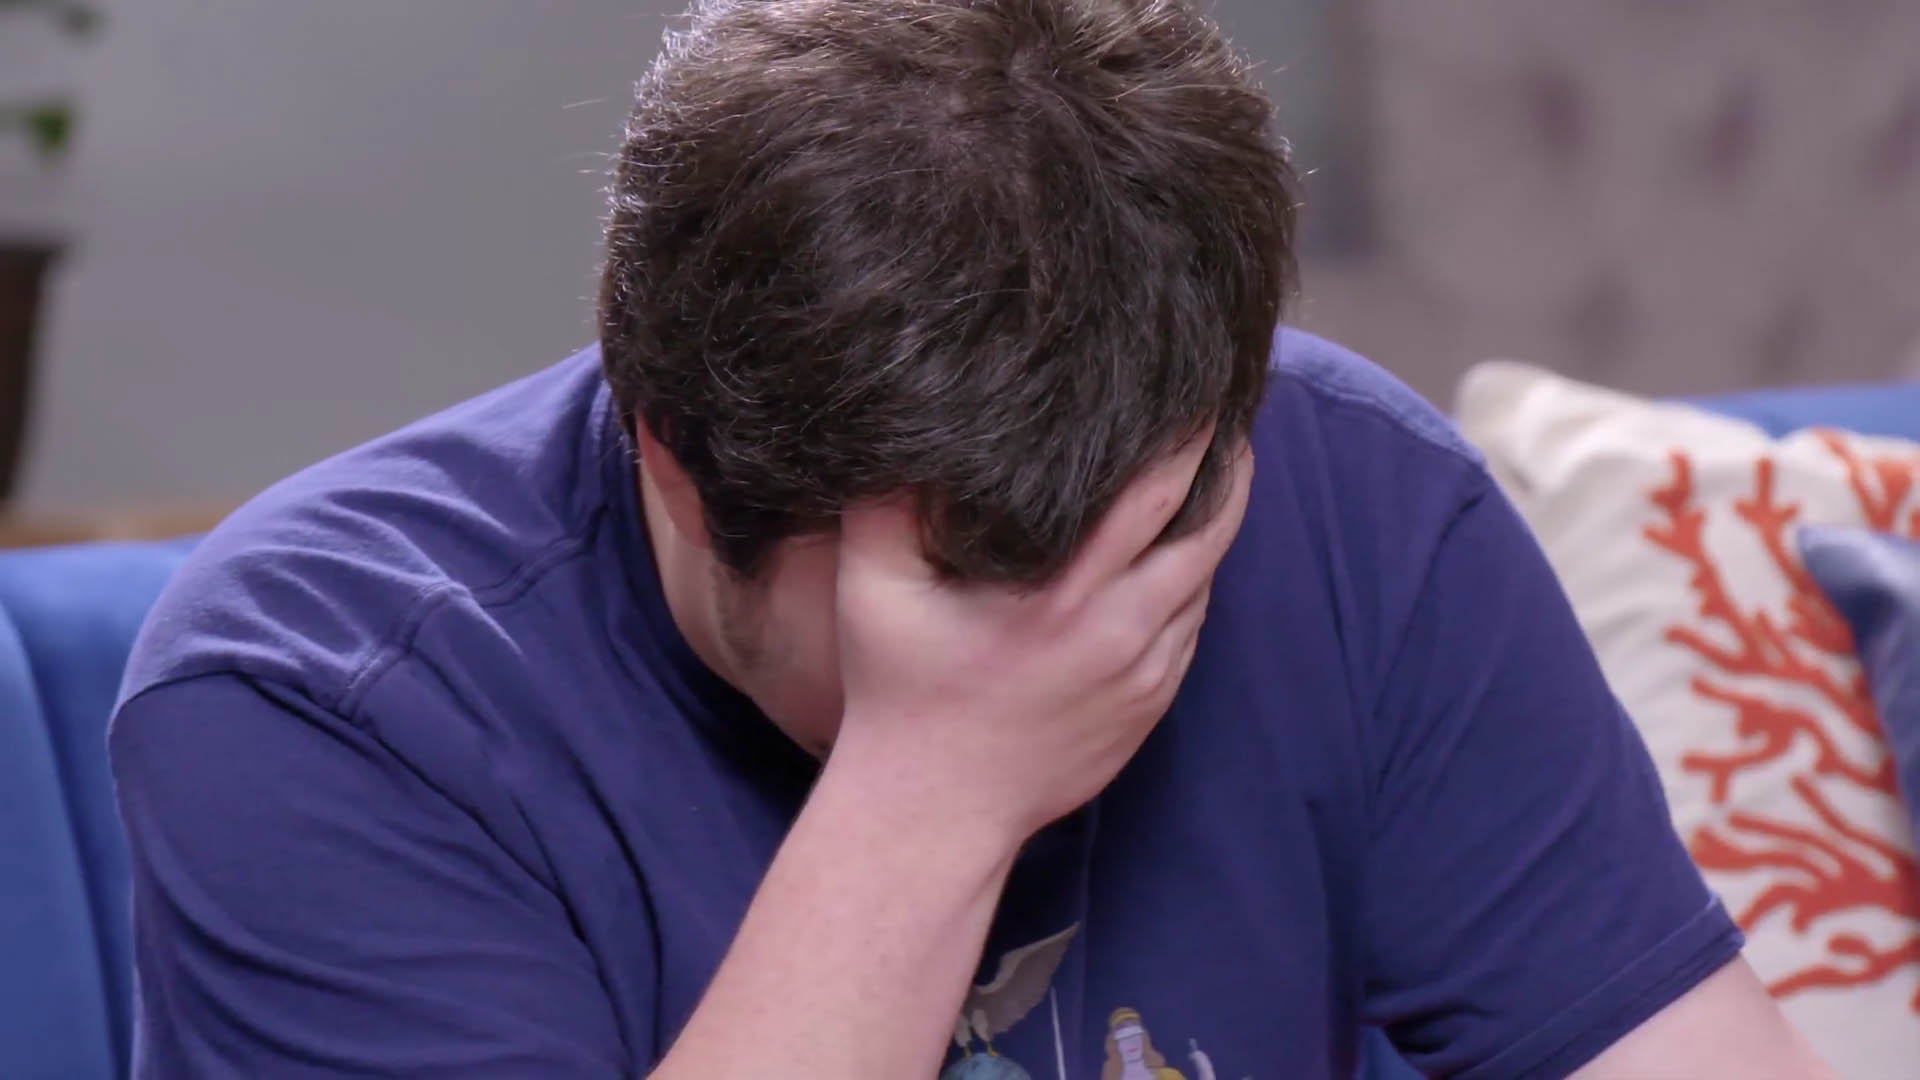 JonTron facepalming.